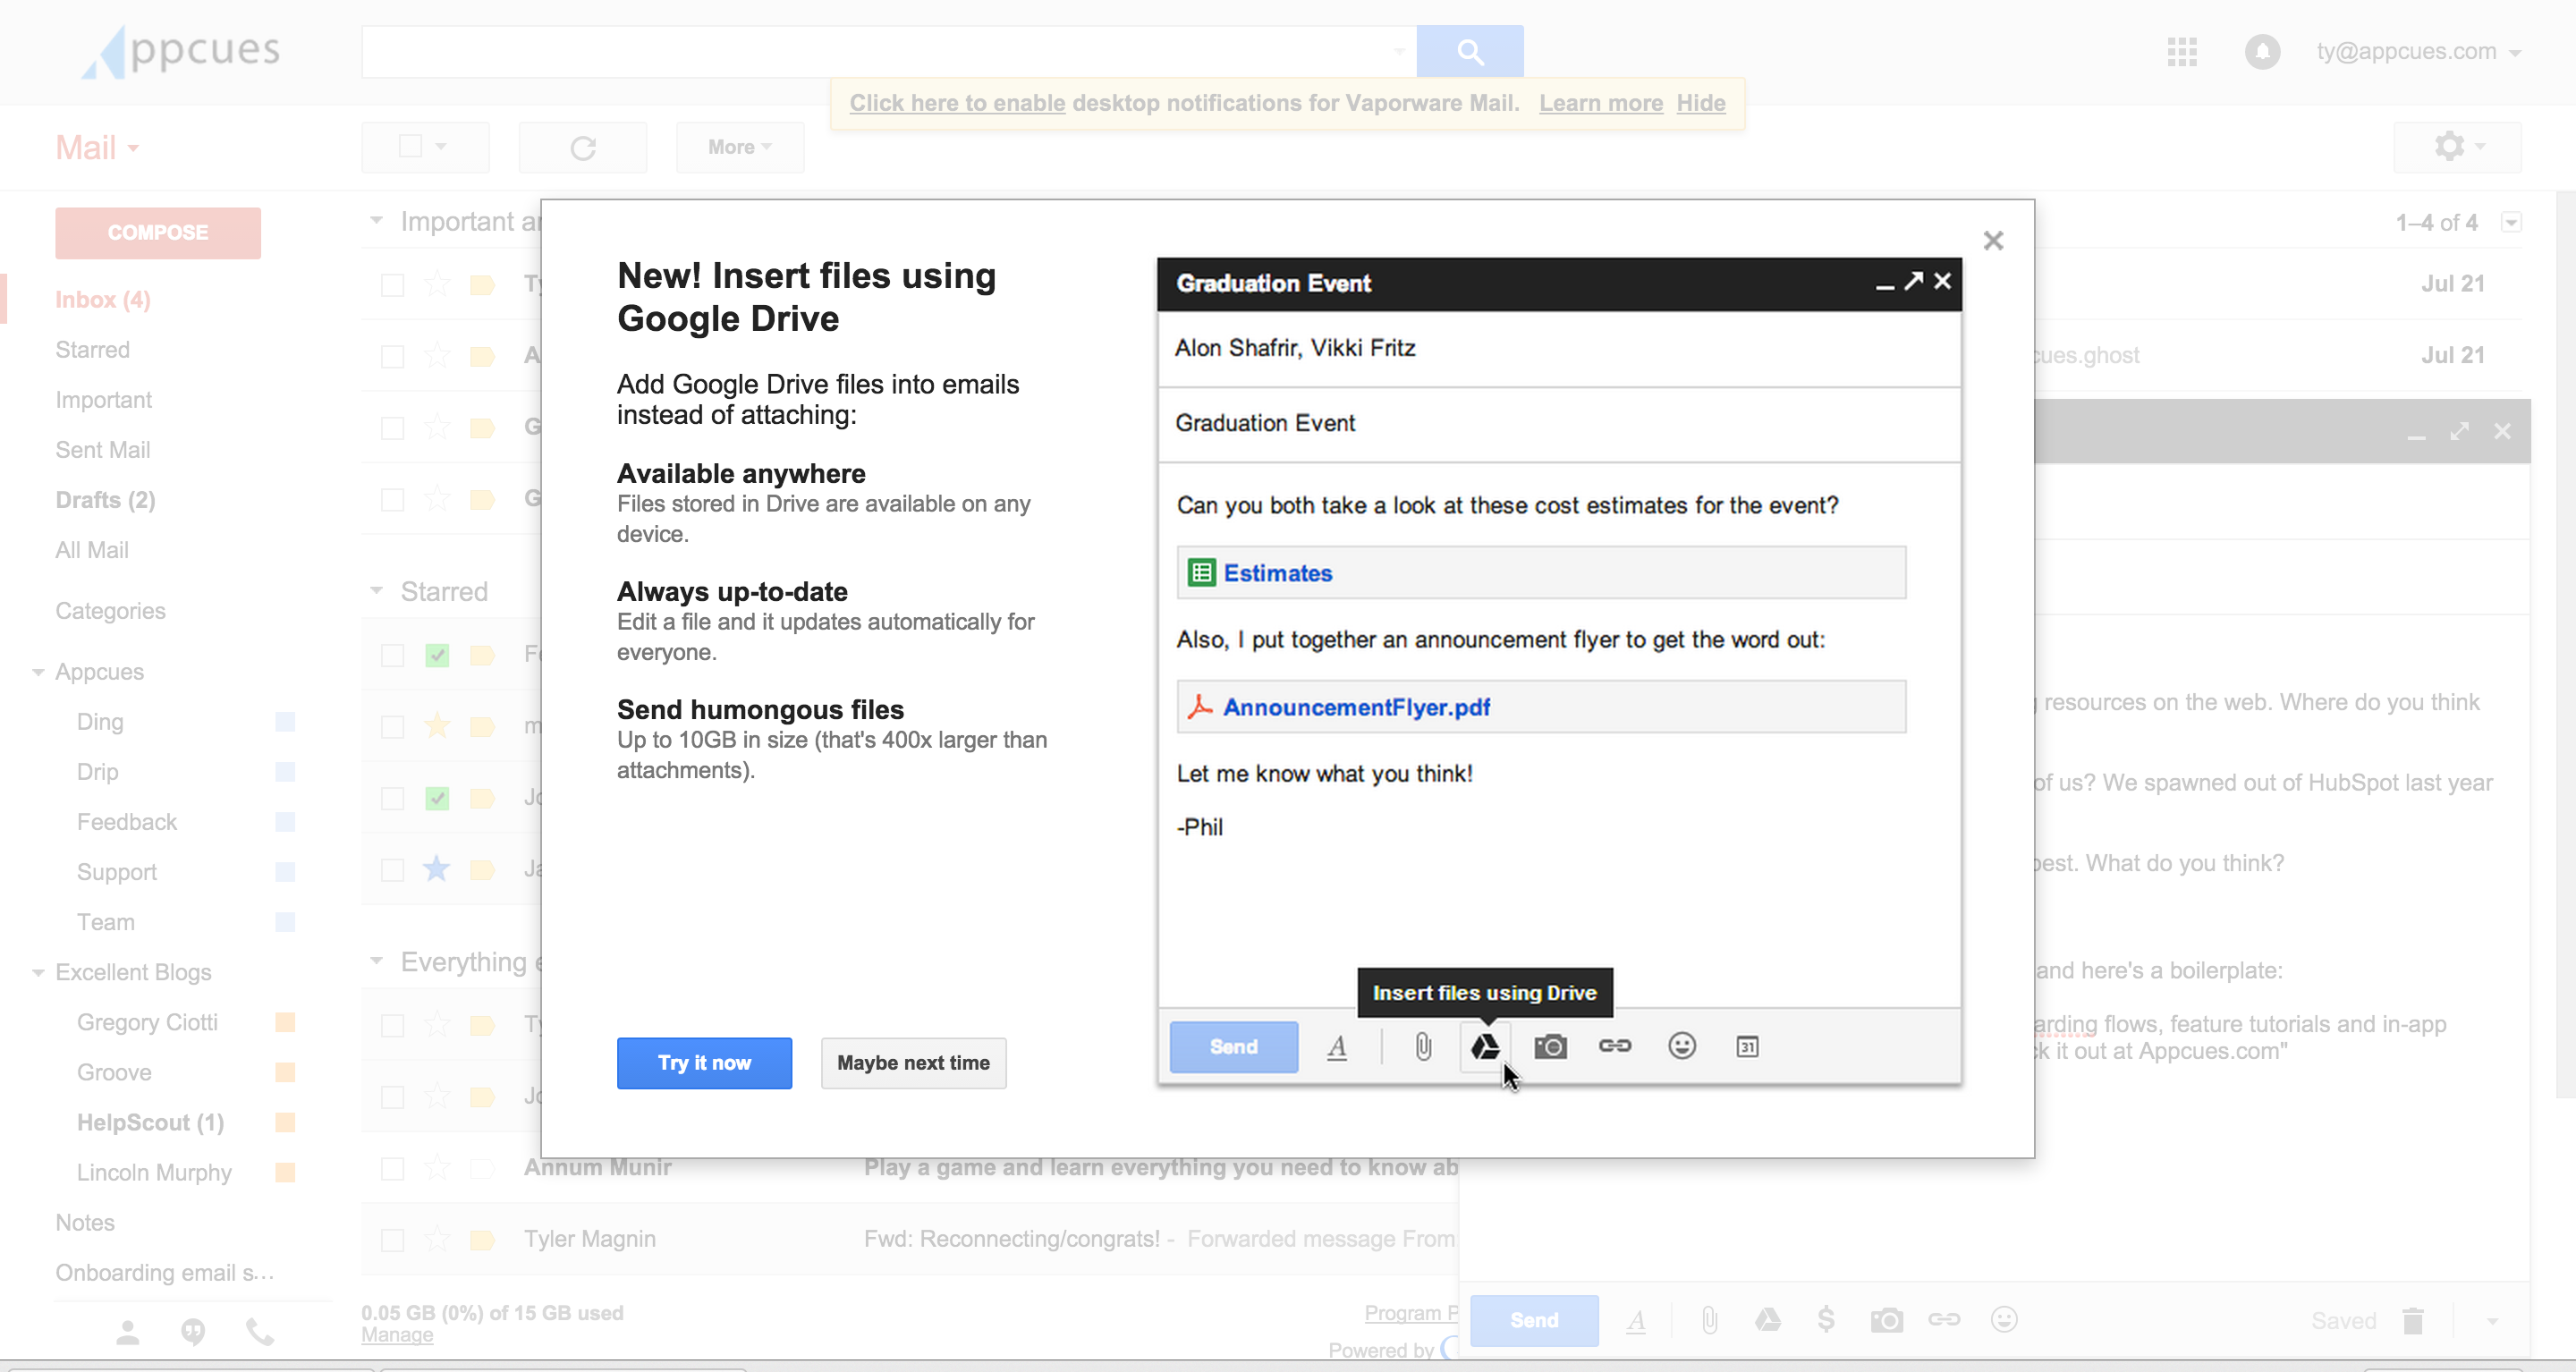 gmail tooltip for engagement